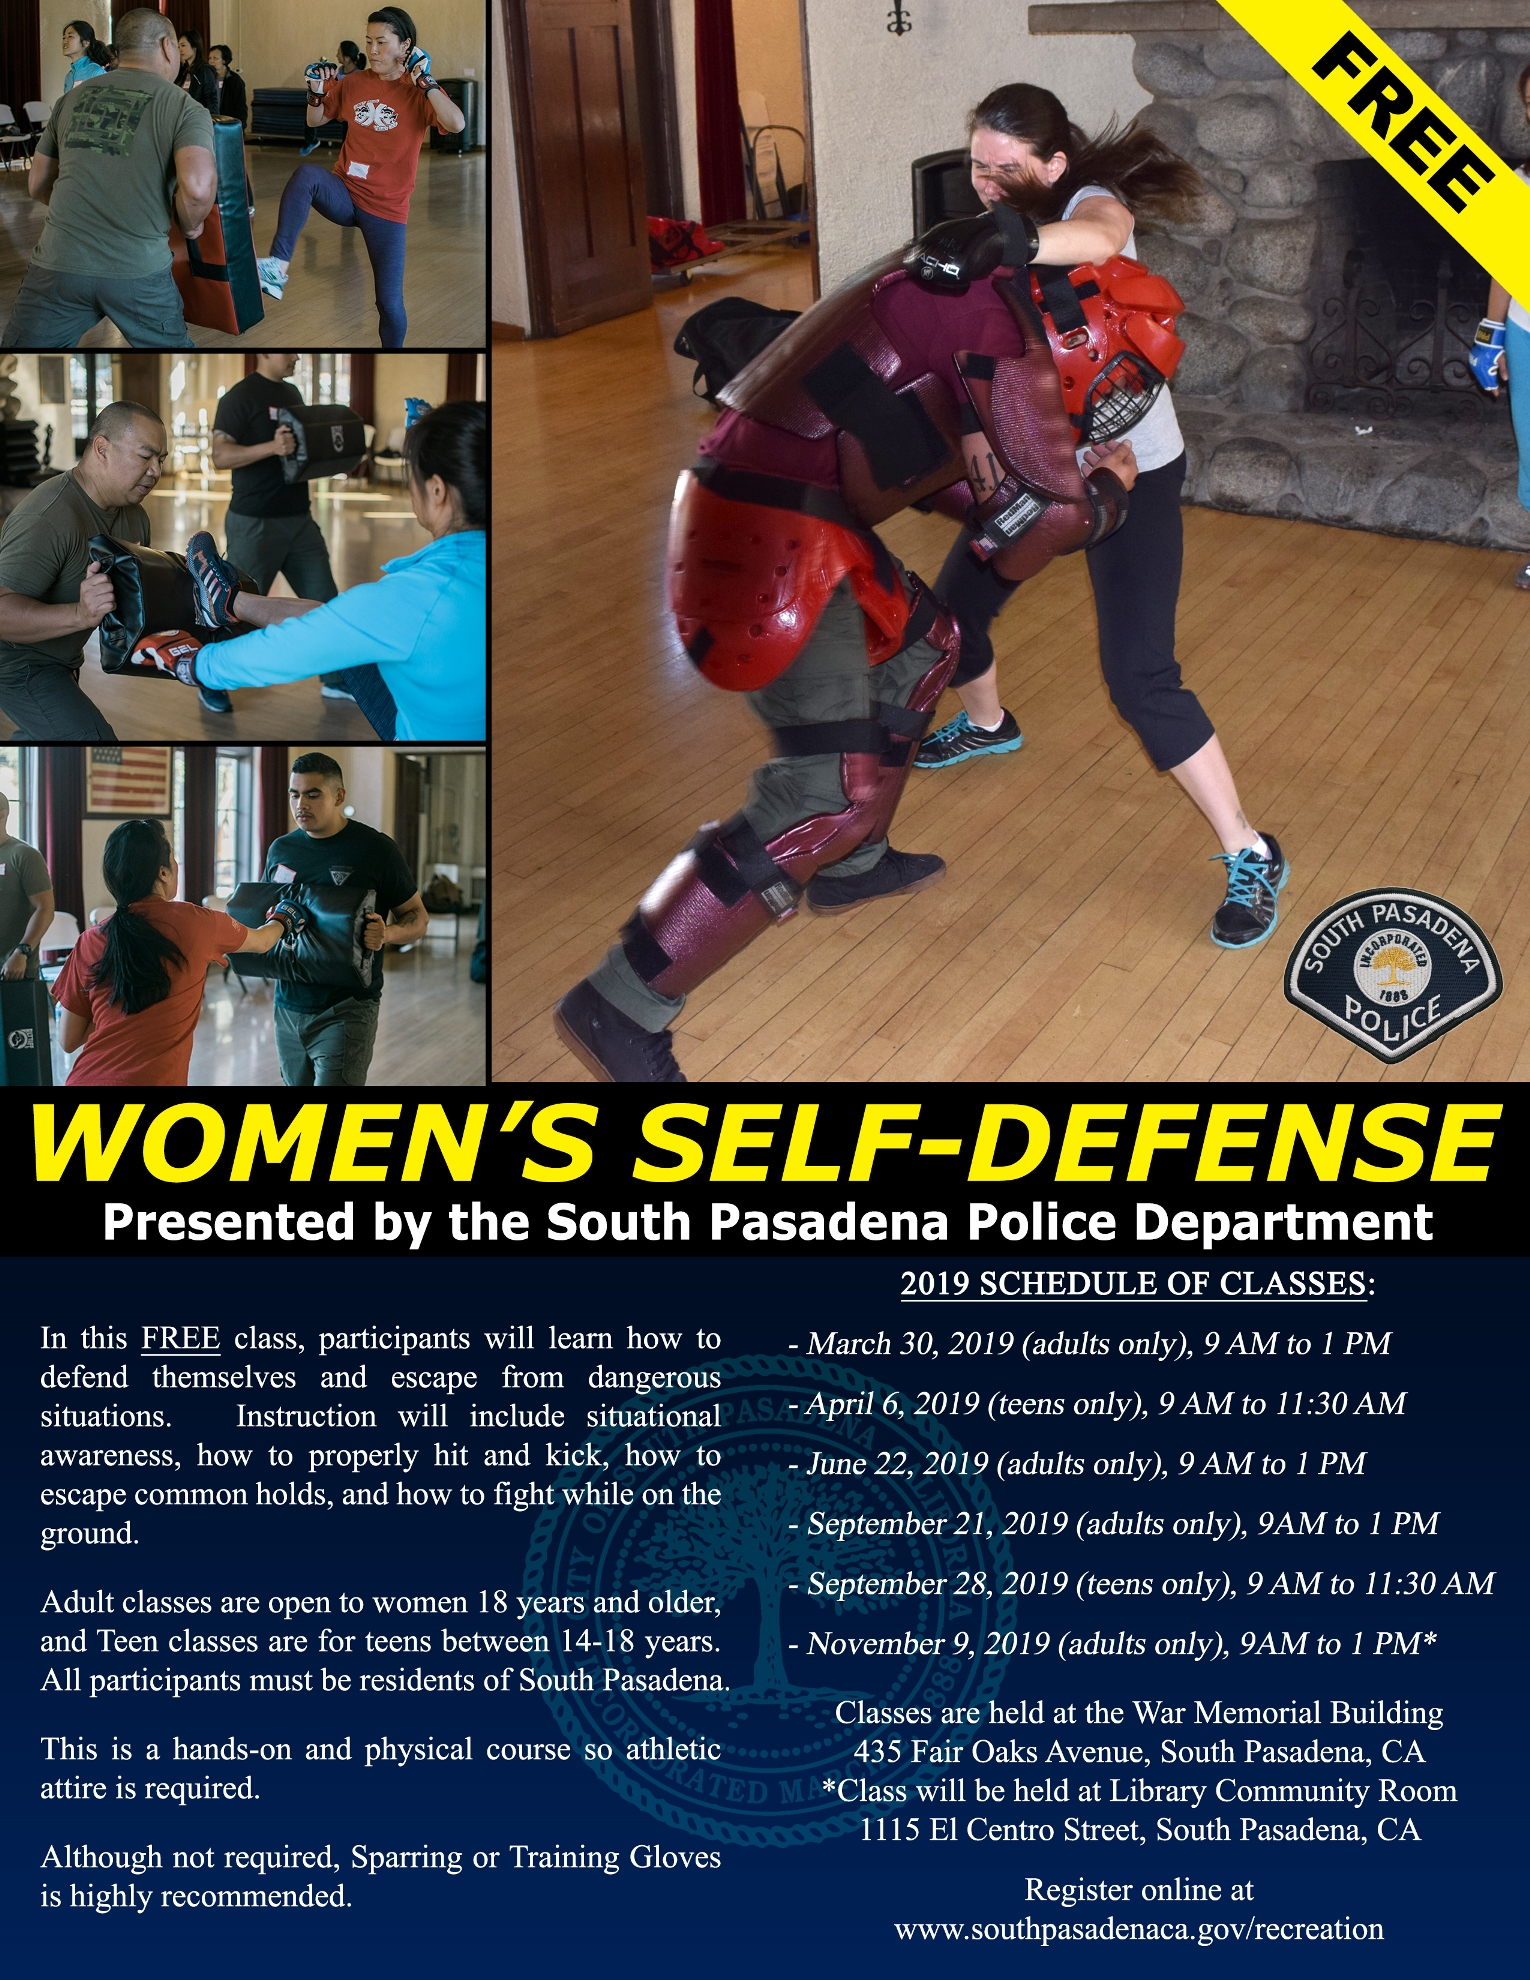 self defense flyer final 2019